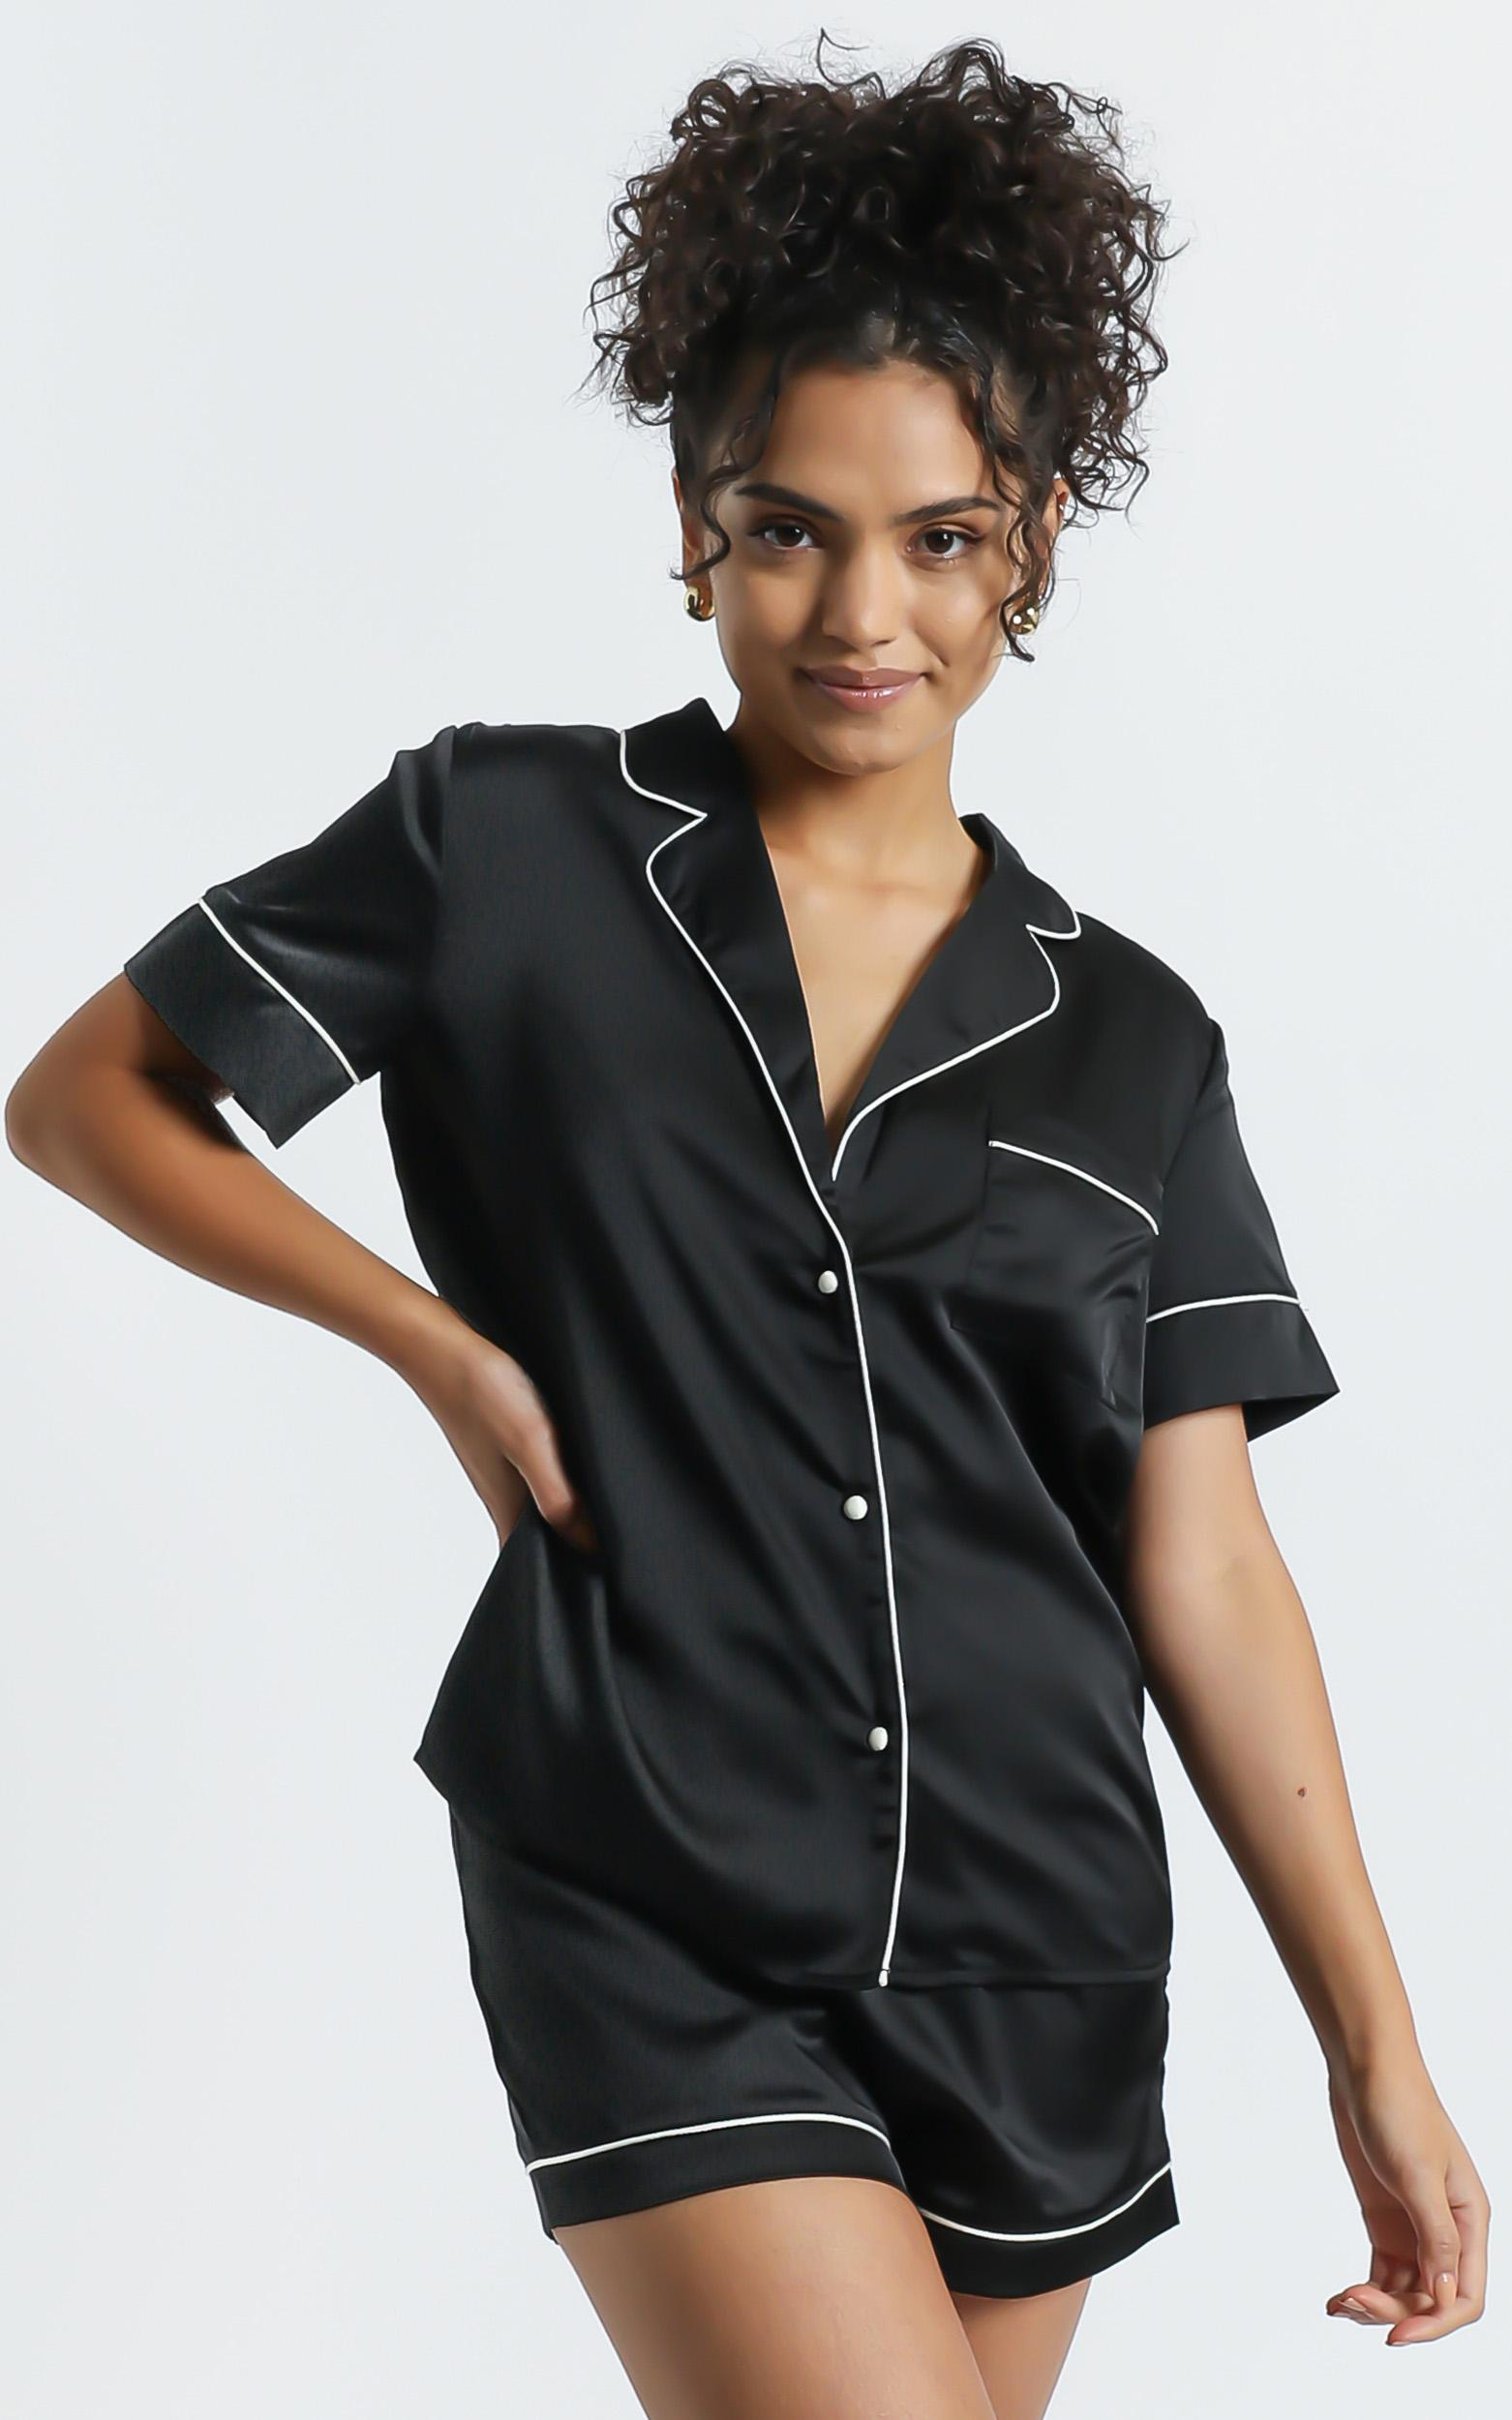 Sleep All Day Top In Black Satin - 6 (XS), BLK1, hi-res image number null